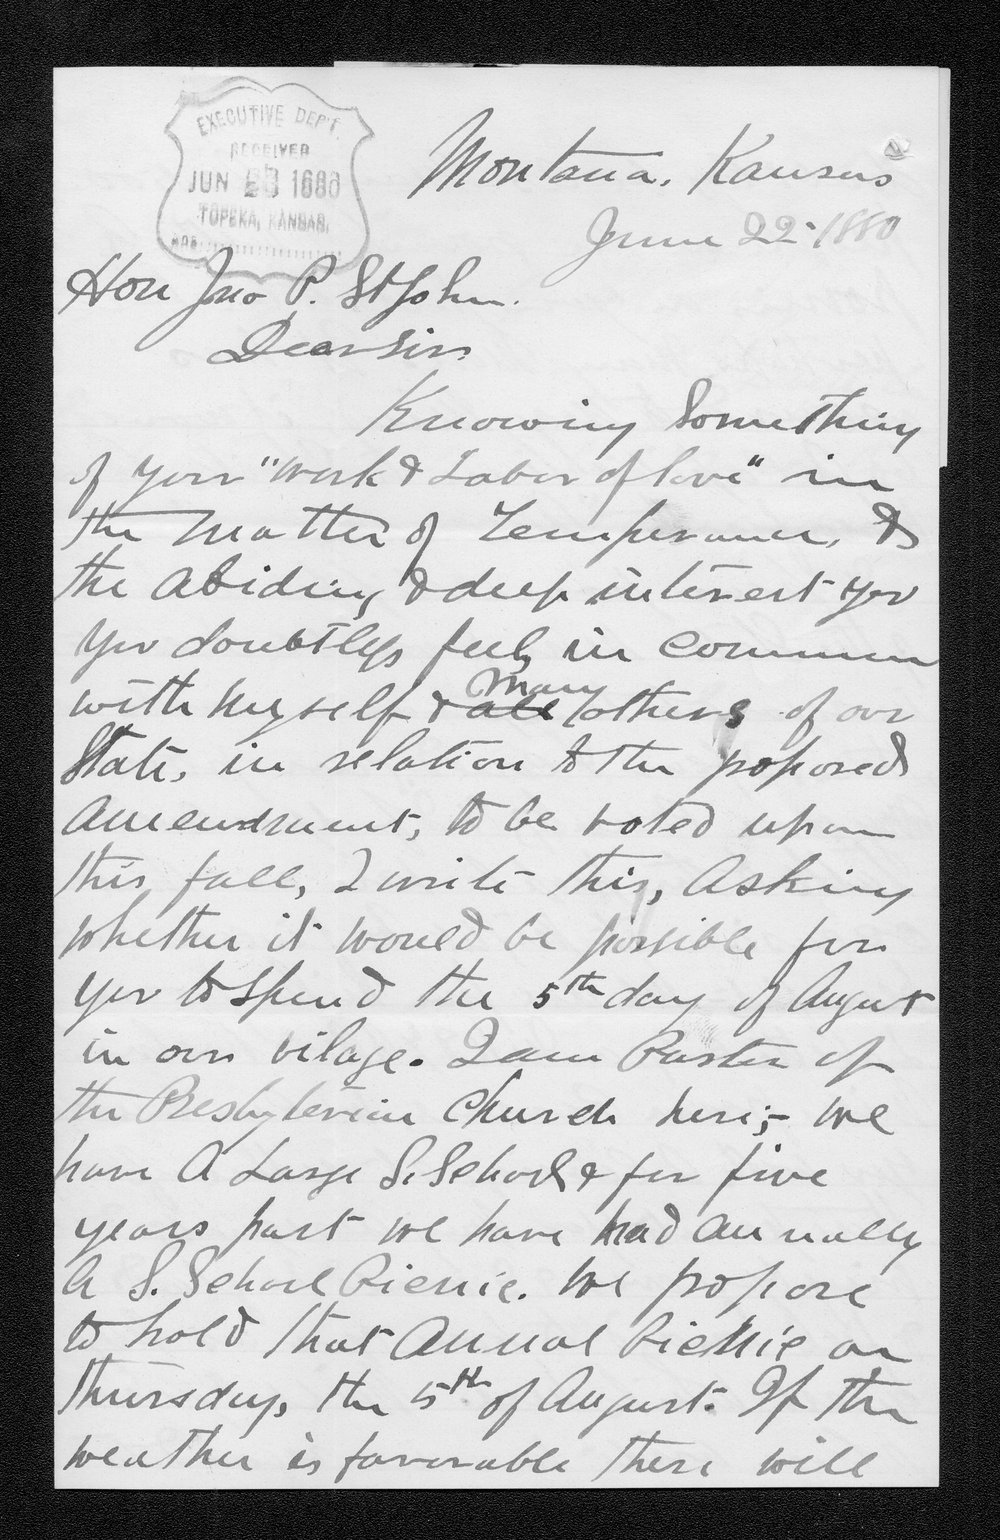 S. W. Griffin to Governor John St. John - 1